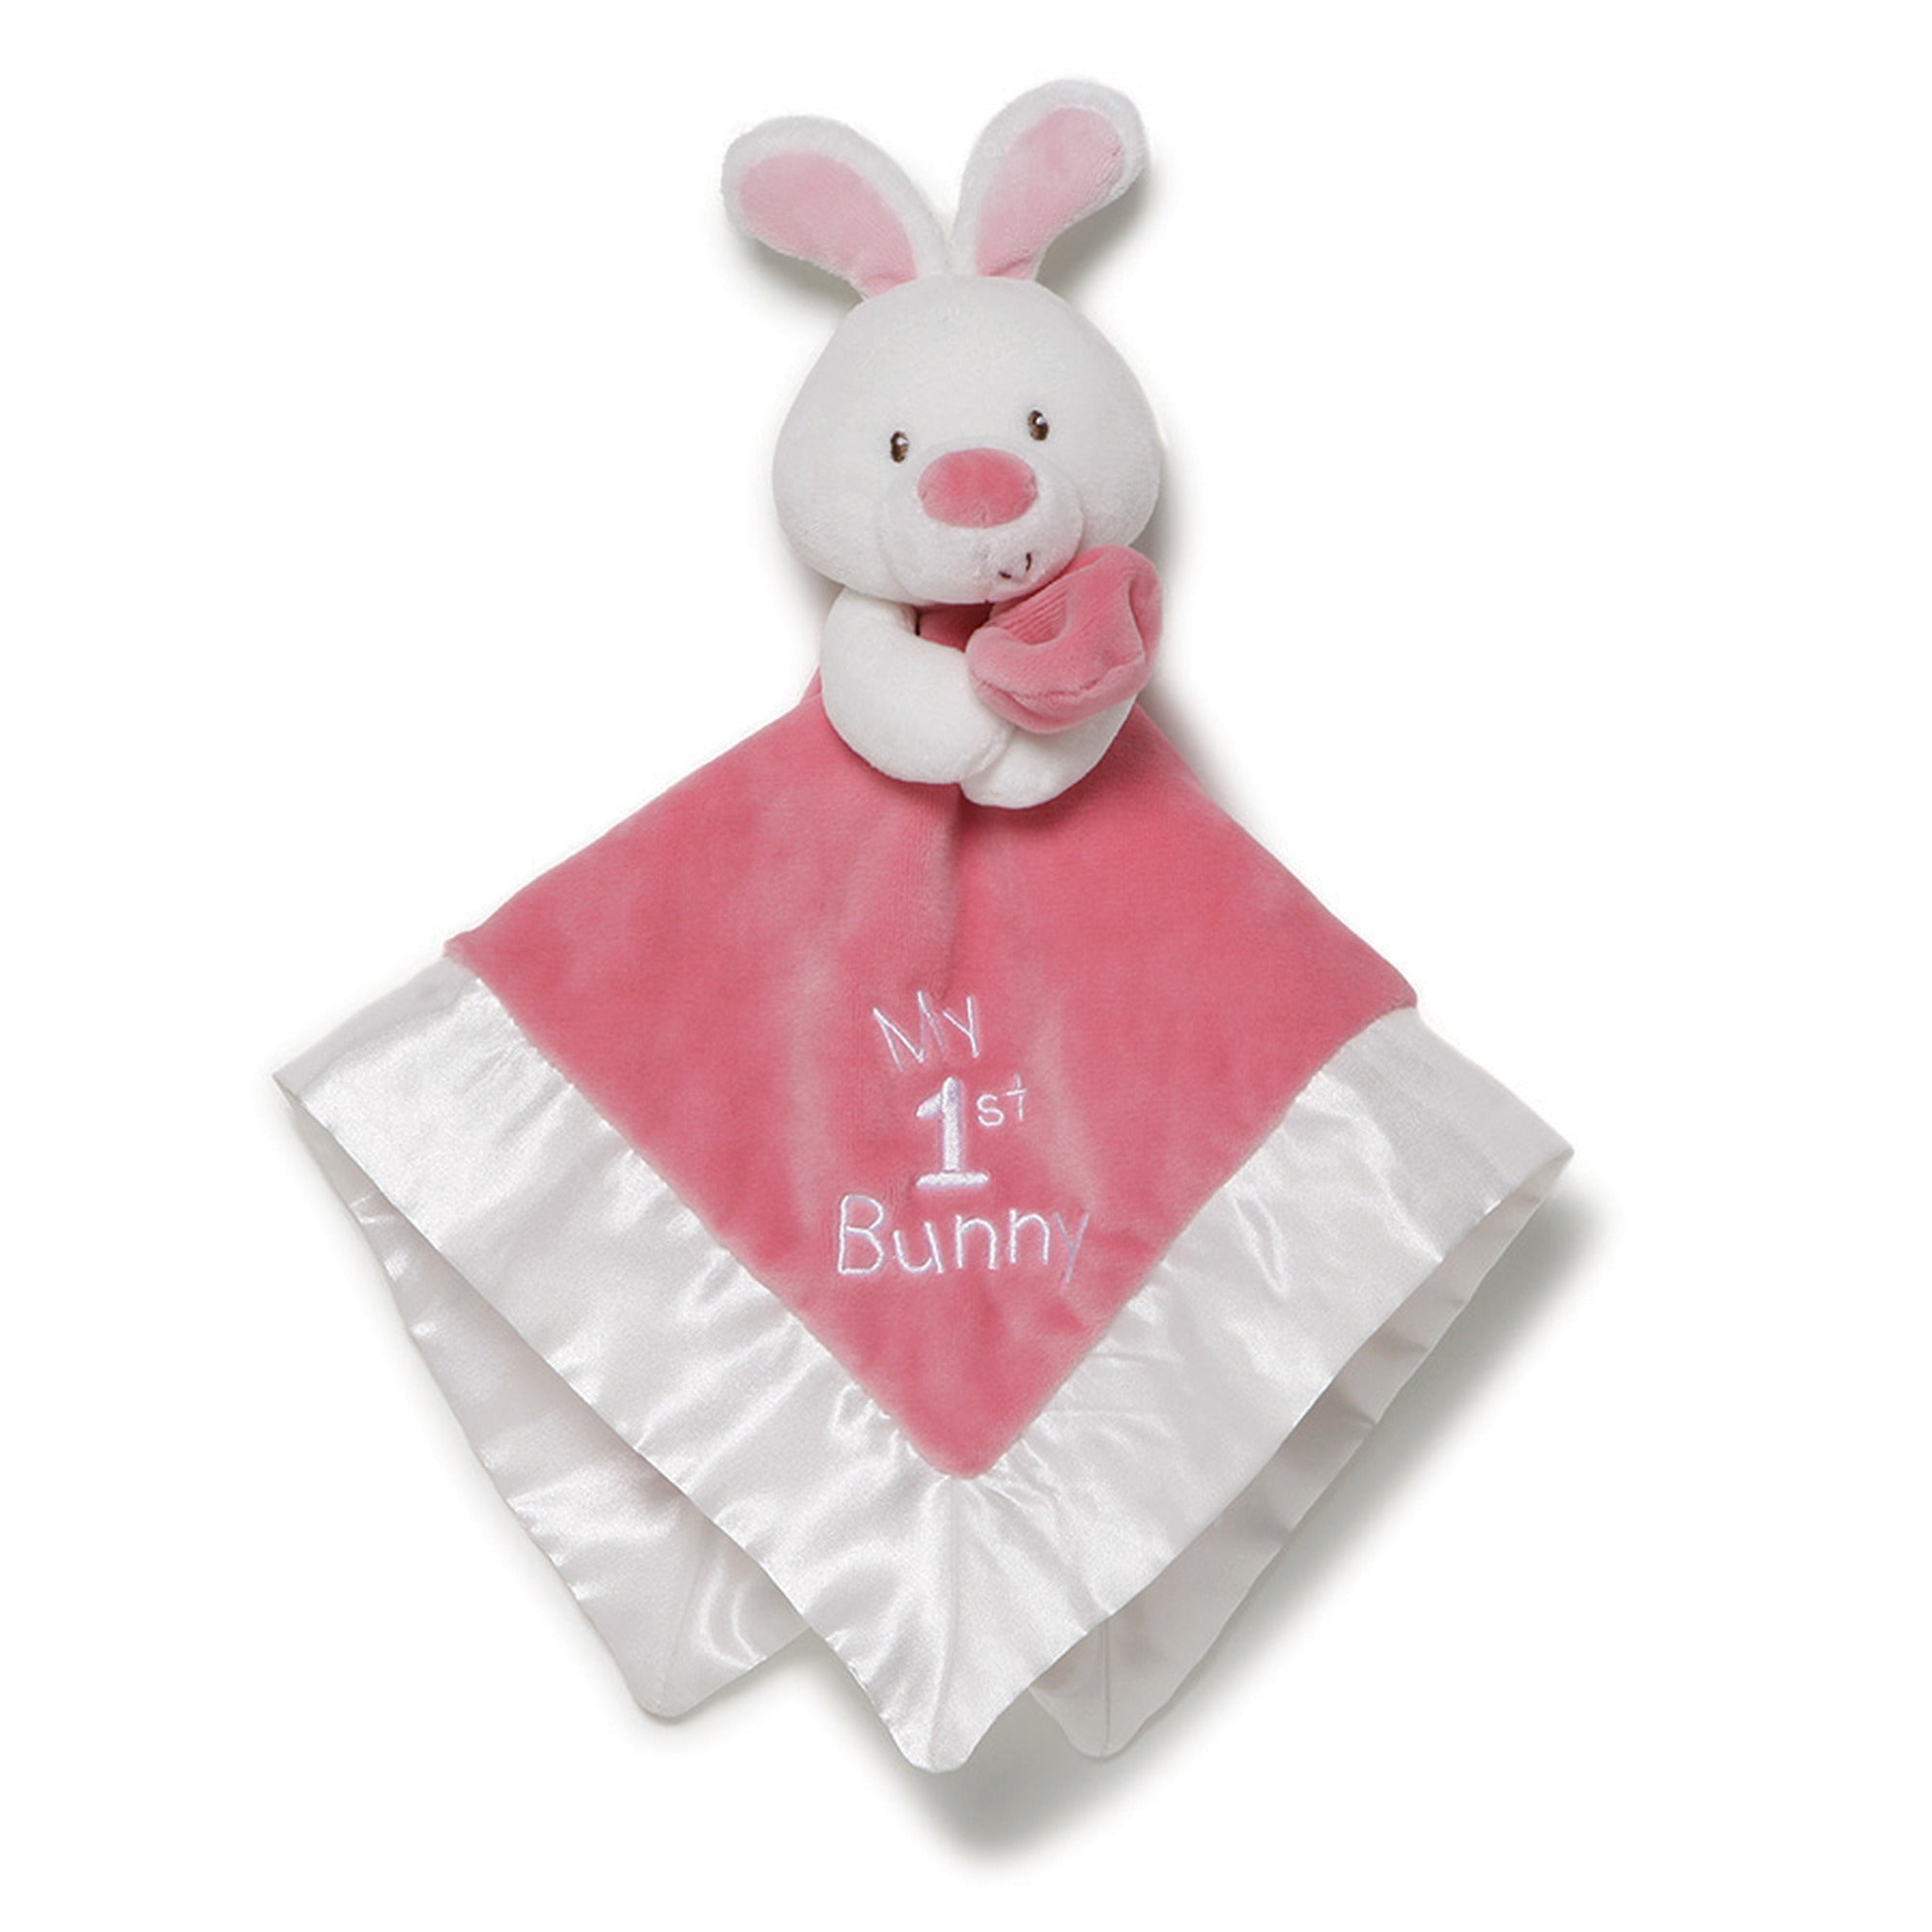 Baby Gund - My First Bunny Lovey in two colors